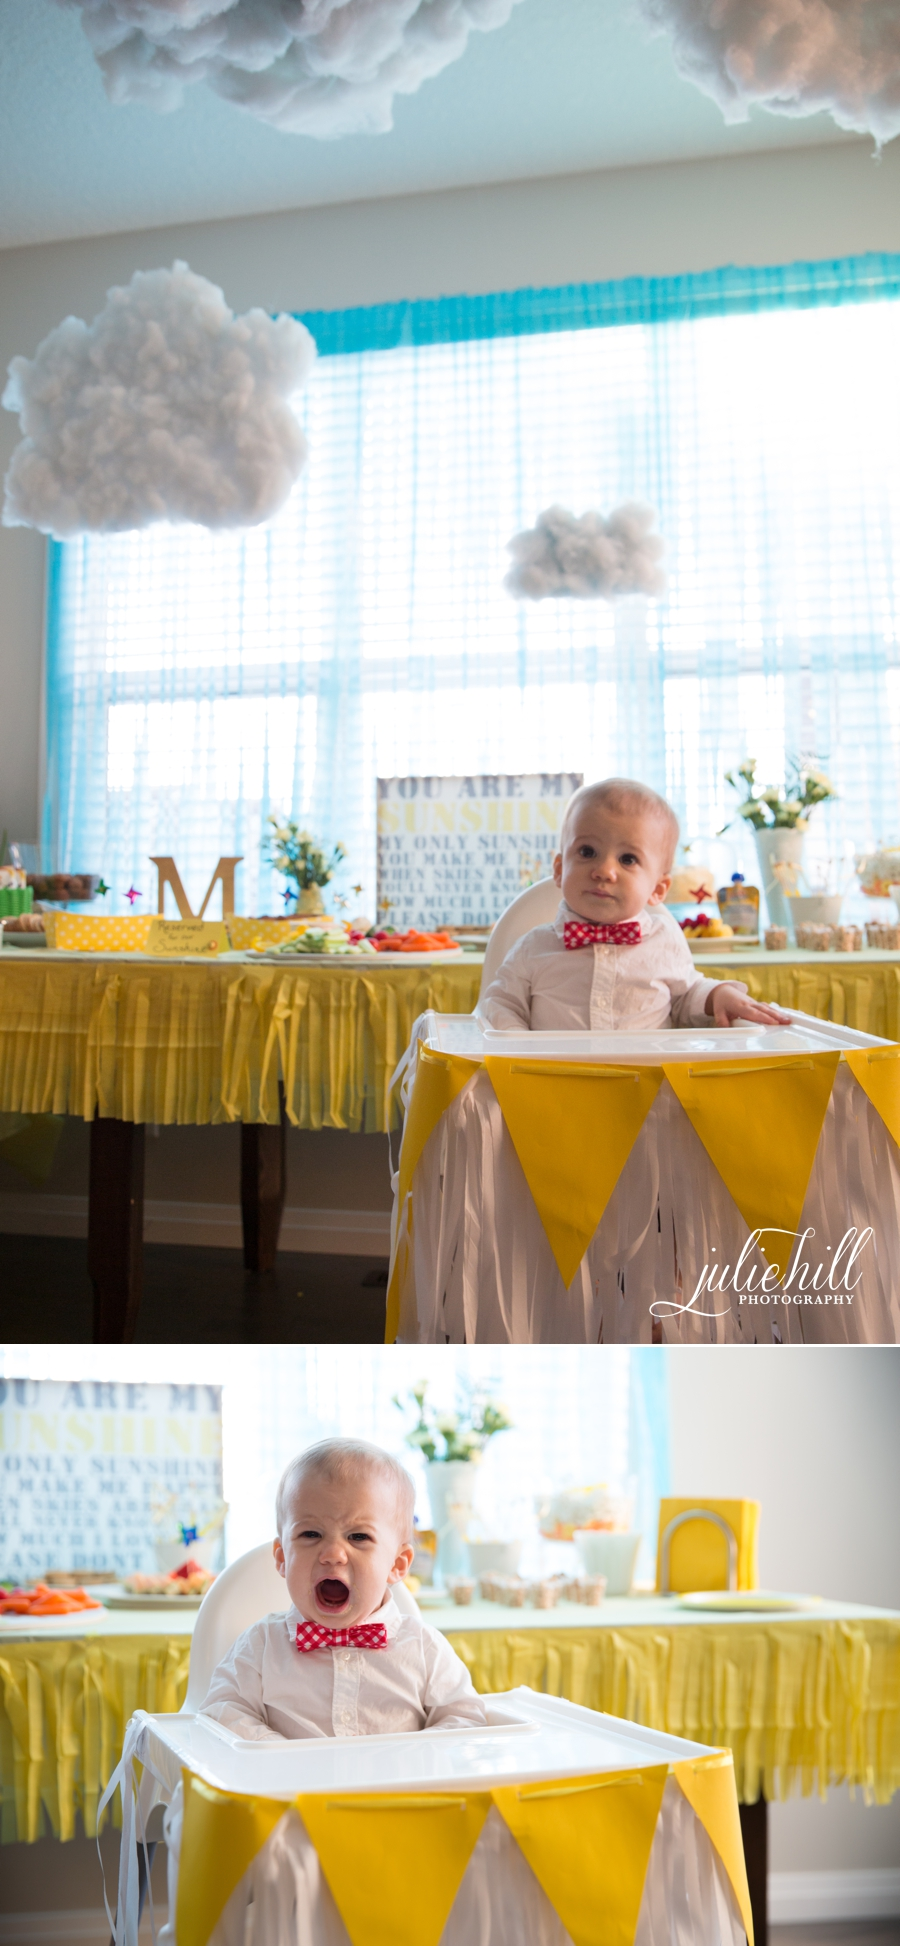 You-are-my-sunshine-first-birthday-theme-photographer-julie-hill-photography-photo